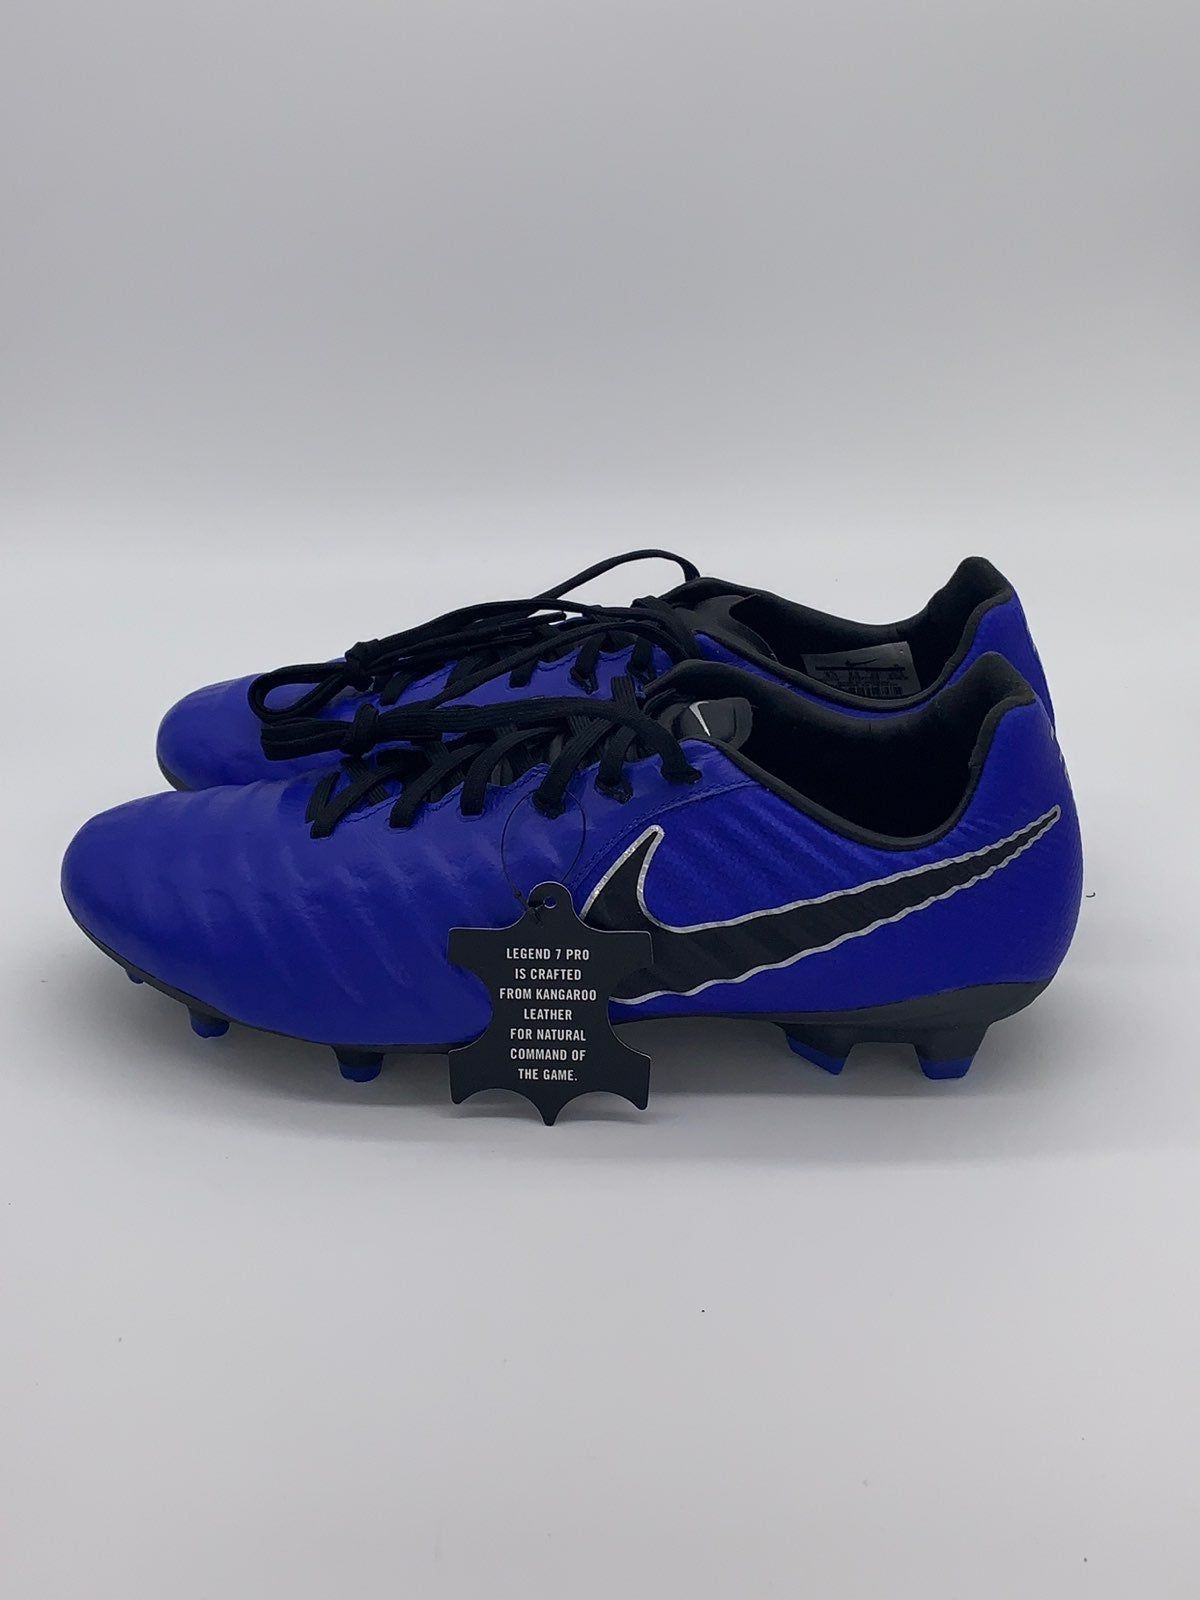 Nike Tiempo Legend Vii 7 Pro Fg Blue Mens Us Soccer Cleats Ah7241 400 New Without The Box Blue Nike Cleats Cleats Soccer Cleats